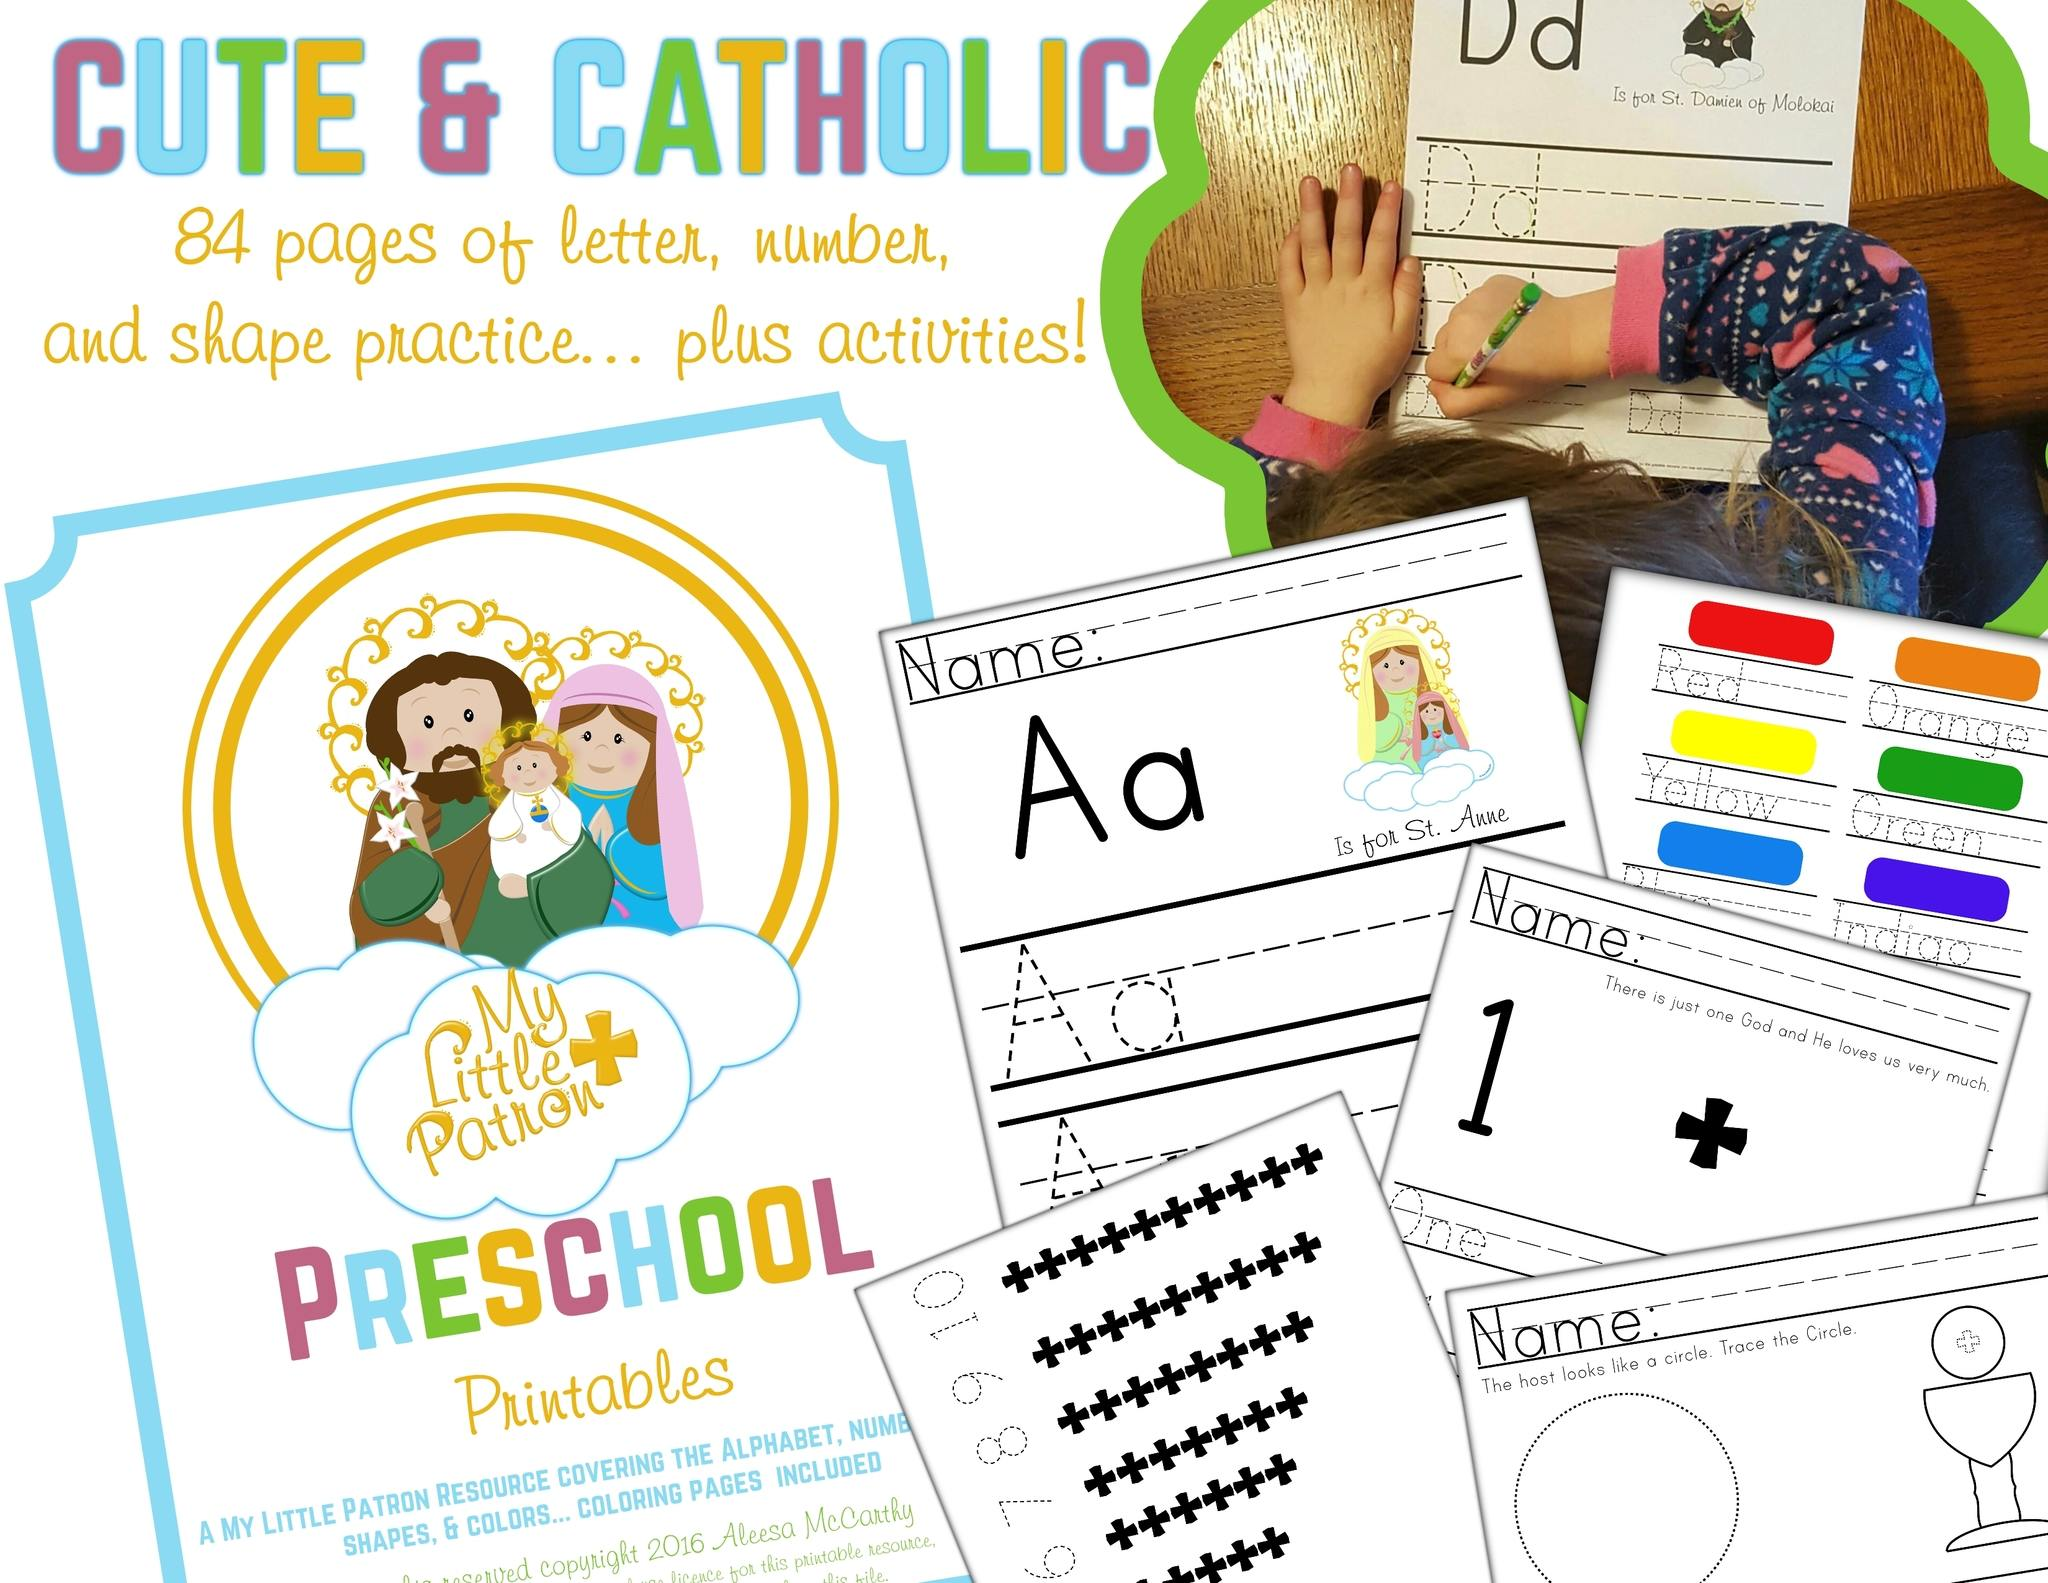 picture relating to Catholic Printable Activities named Catholic Preschool Printables